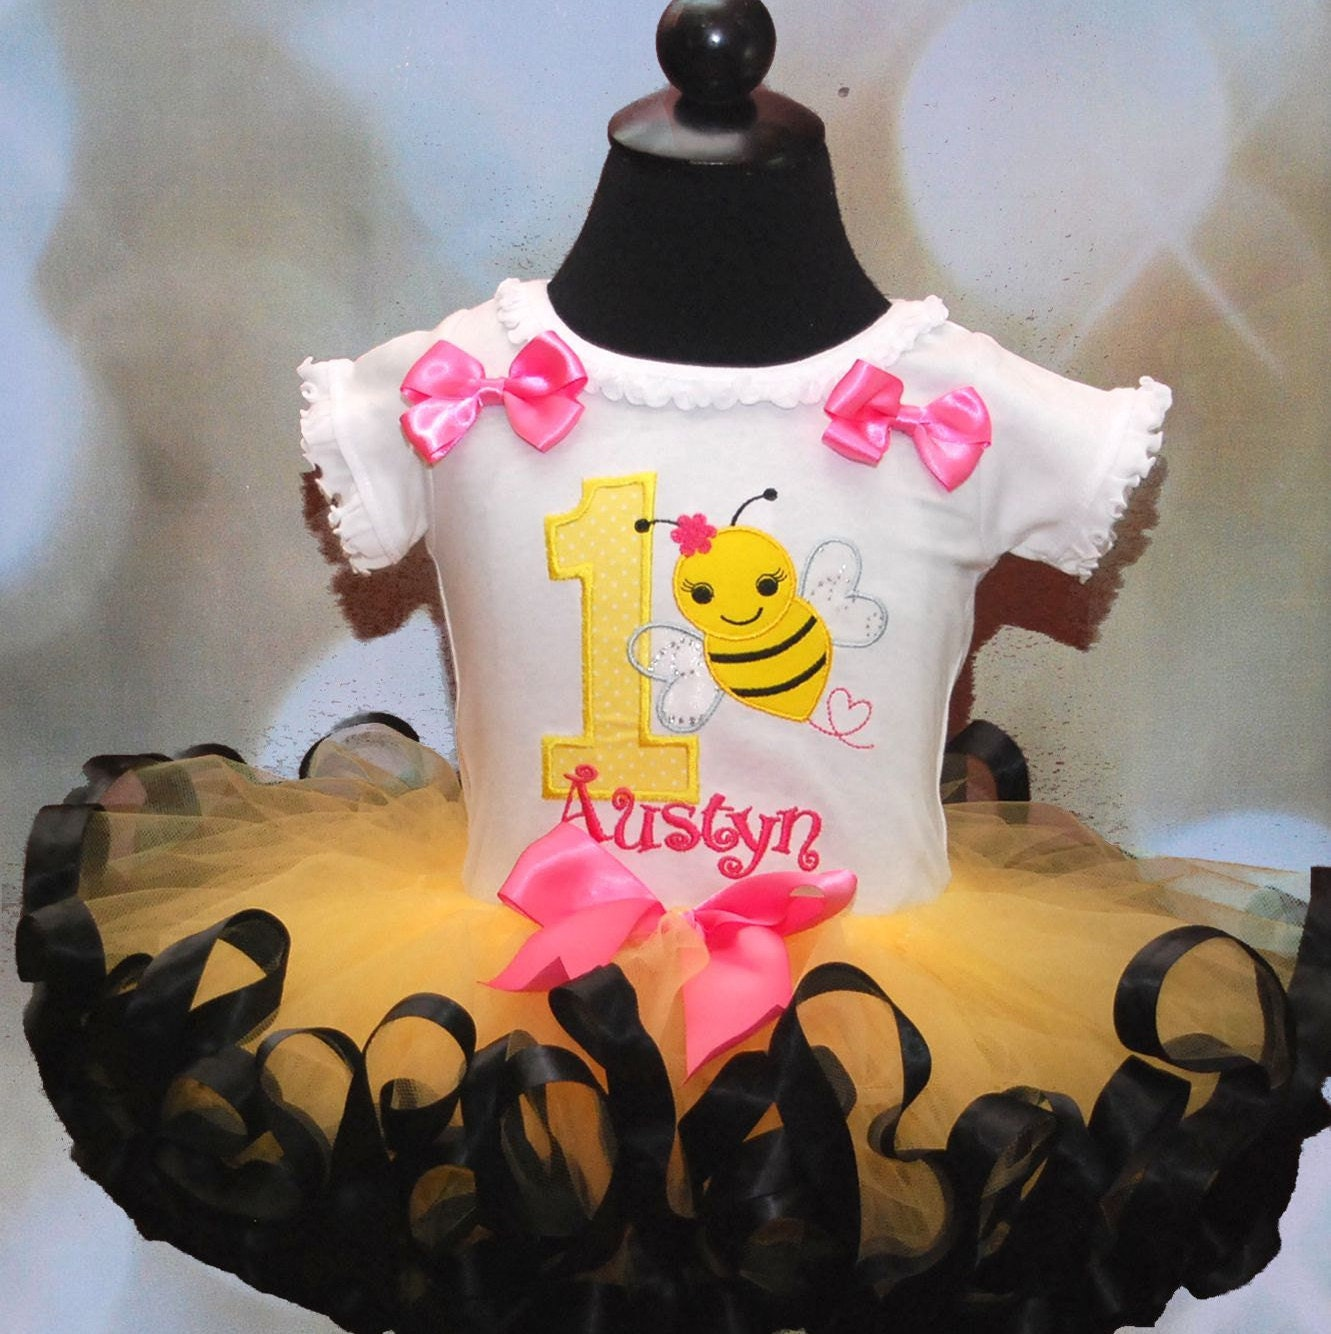 bumble bee birthday outfit, 1st birthday outfit girl, baby bumble bee birthday tutu outfit, ribbon trim tutu, first birthday cake smash set